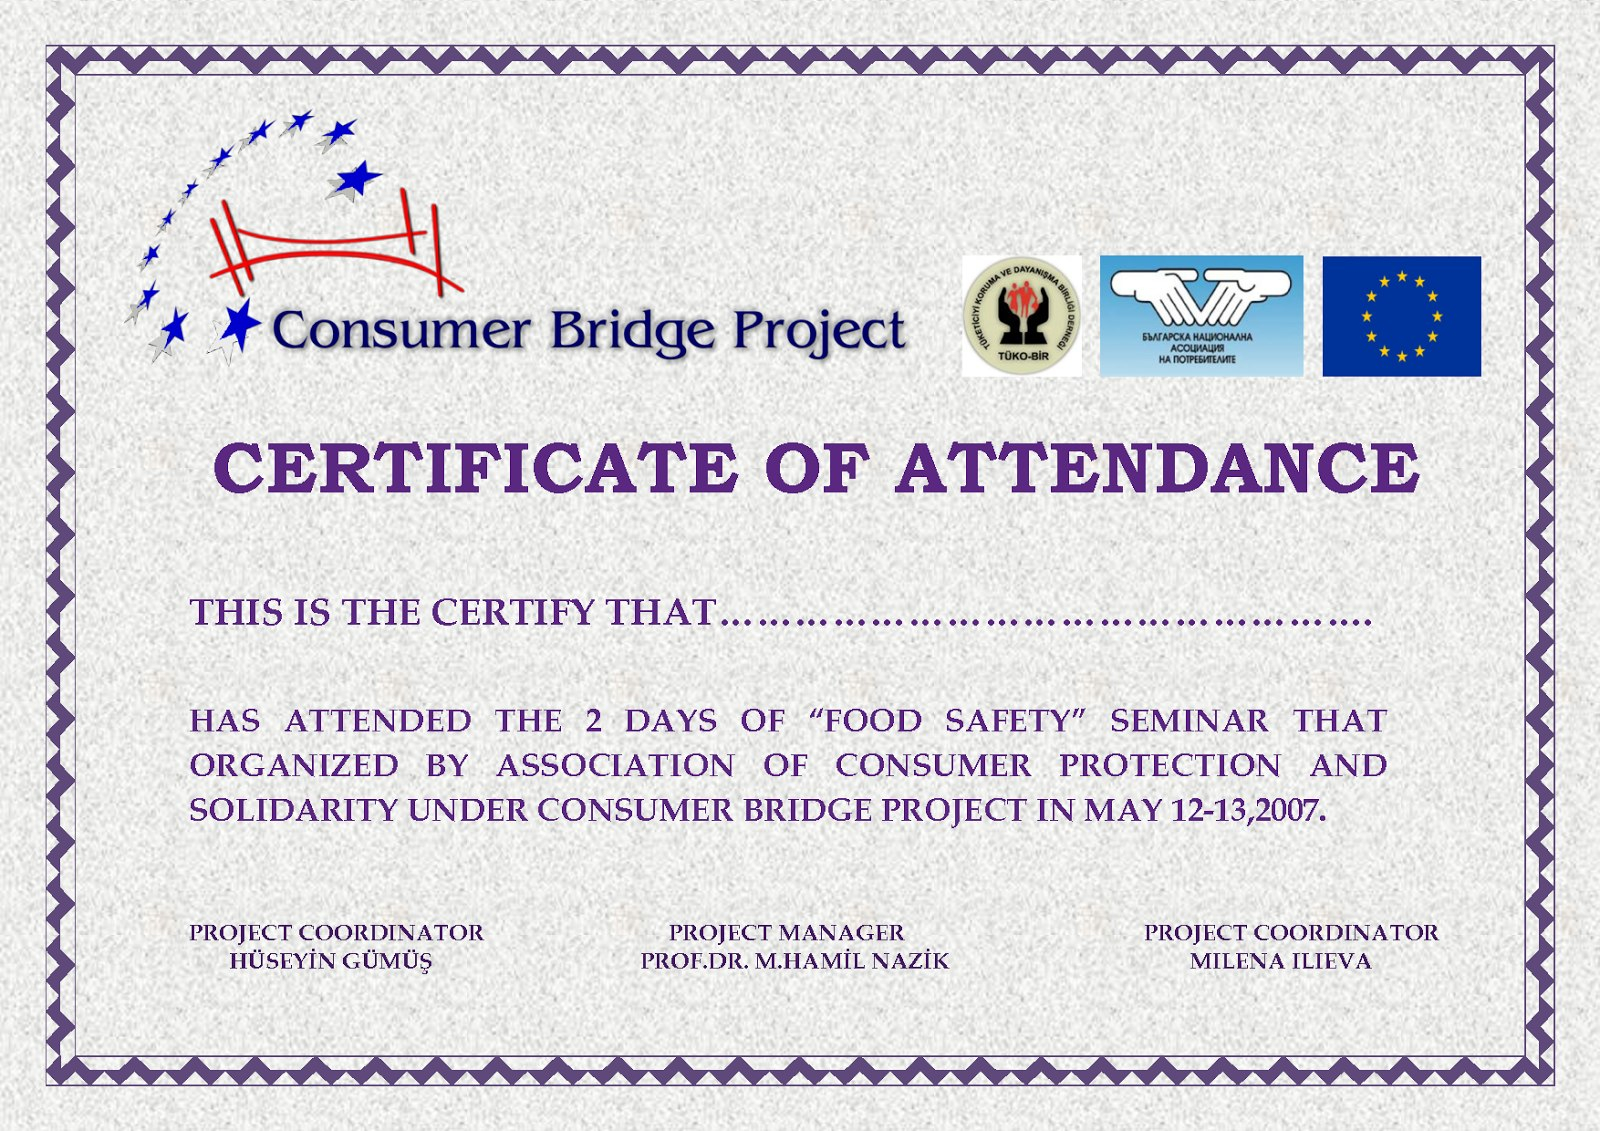 Perfect Attendance Certificate Templates  Free Download  Dtemplates With Award Certificate Templates Word 2007